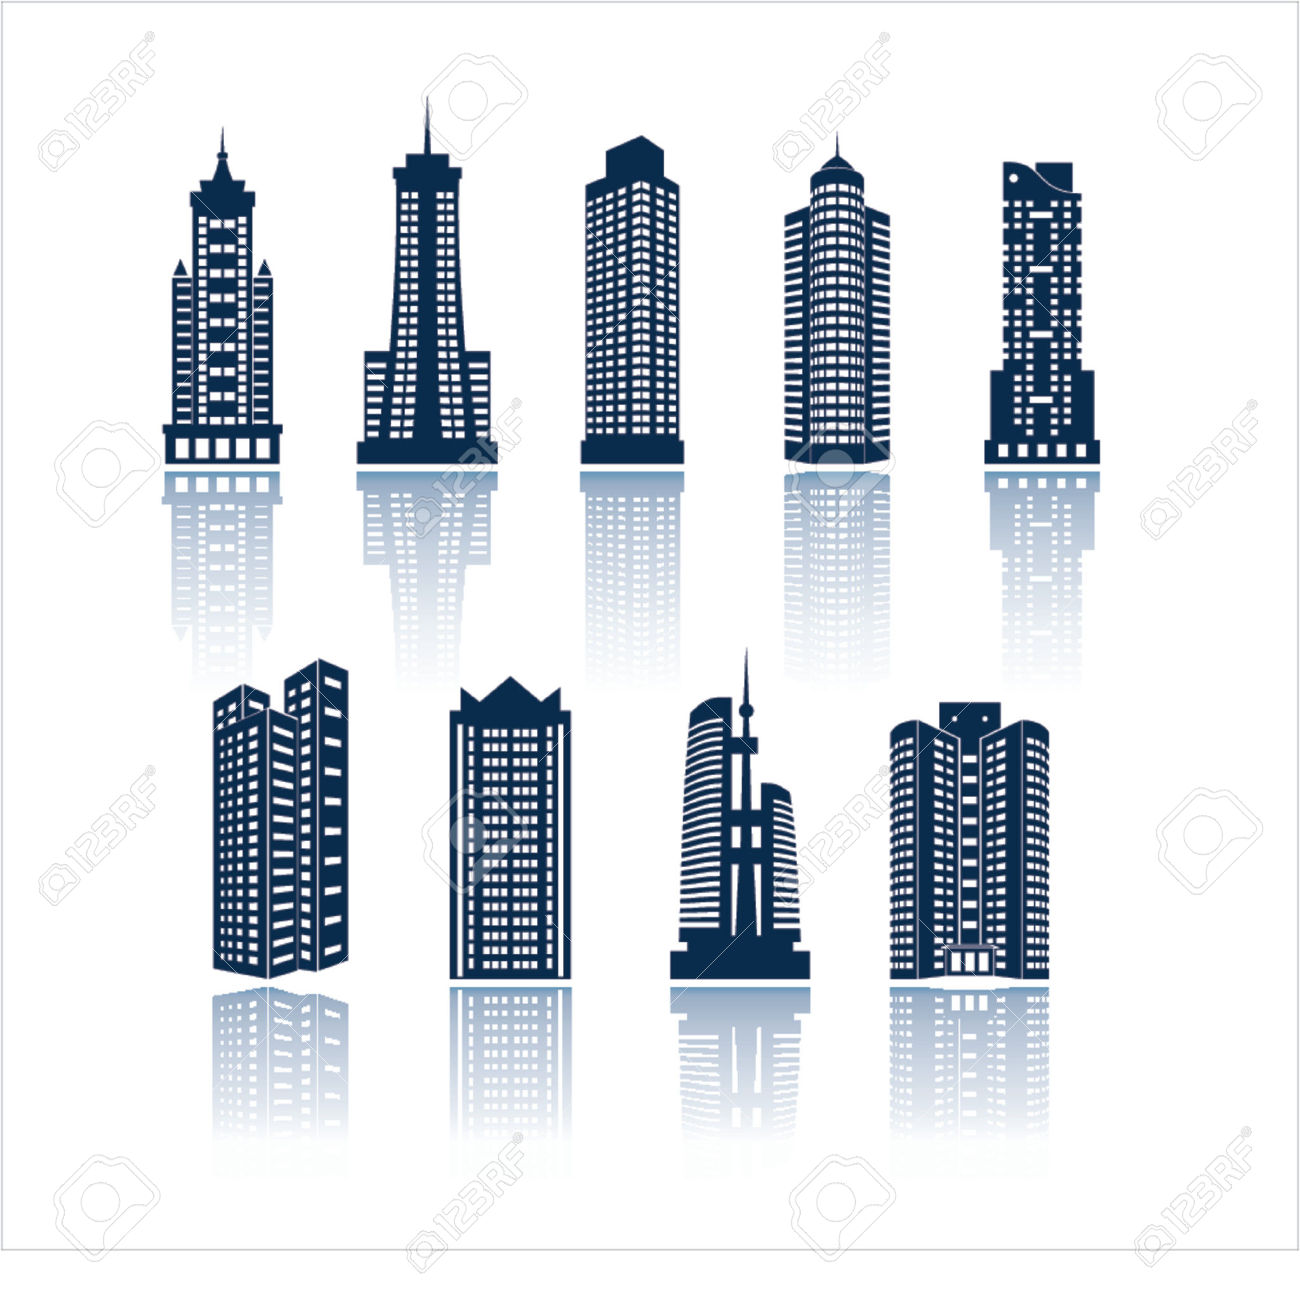 Building clipart vector jpg black and white Building clipart vector - ClipartFest jpg black and white